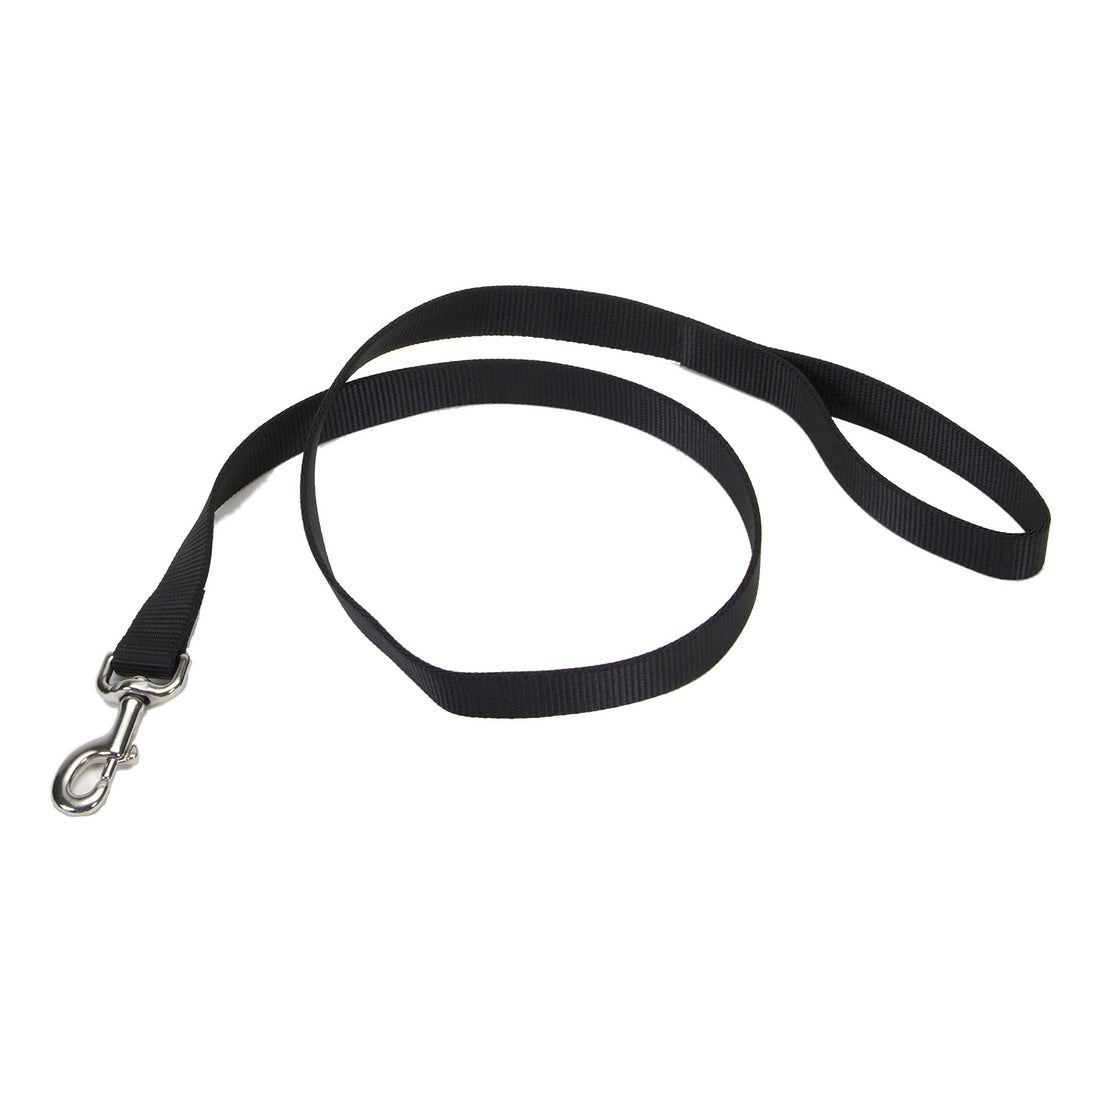 "Coastal Nylon Lead 6' - 5/8"" Black"